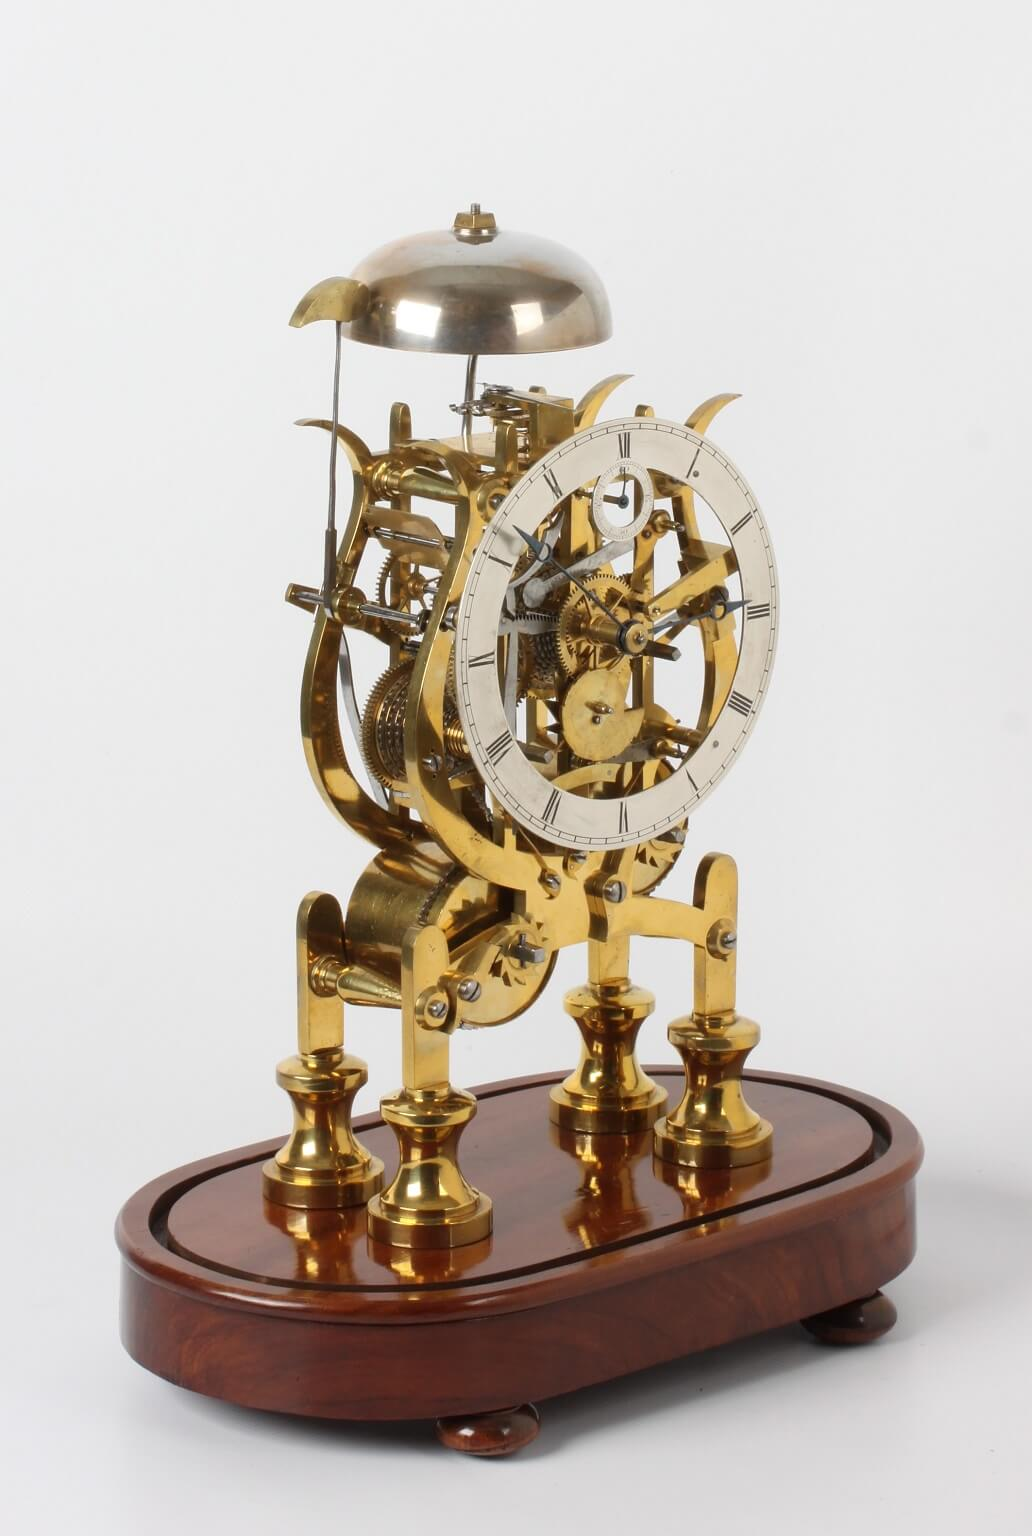 Glass Dome With Base An English Brass Lyre-shaped Skeleton Clock, Dent's, Circa